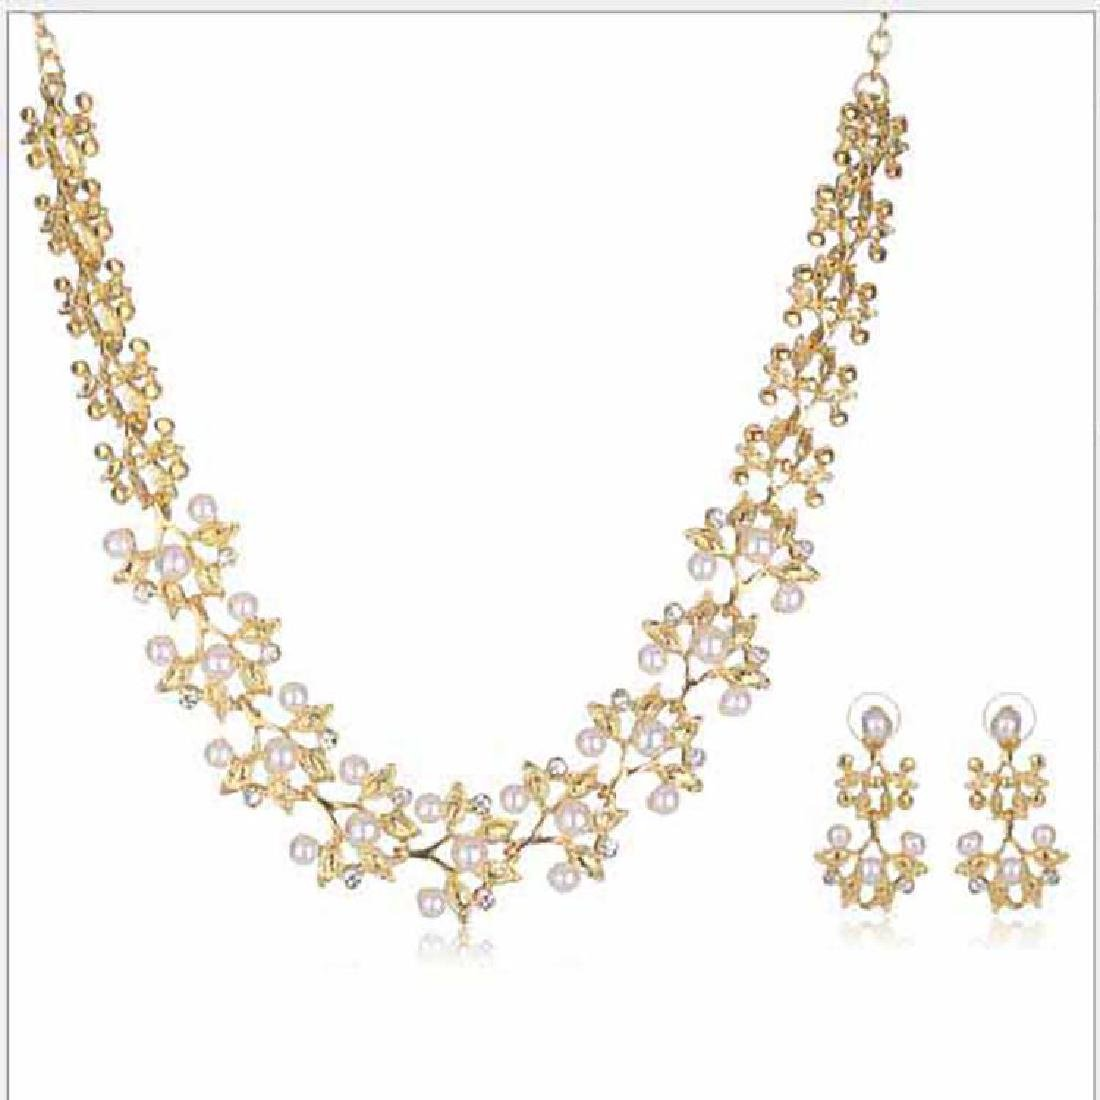 Matching Diamond & Pearl Necklace & Earrings set in